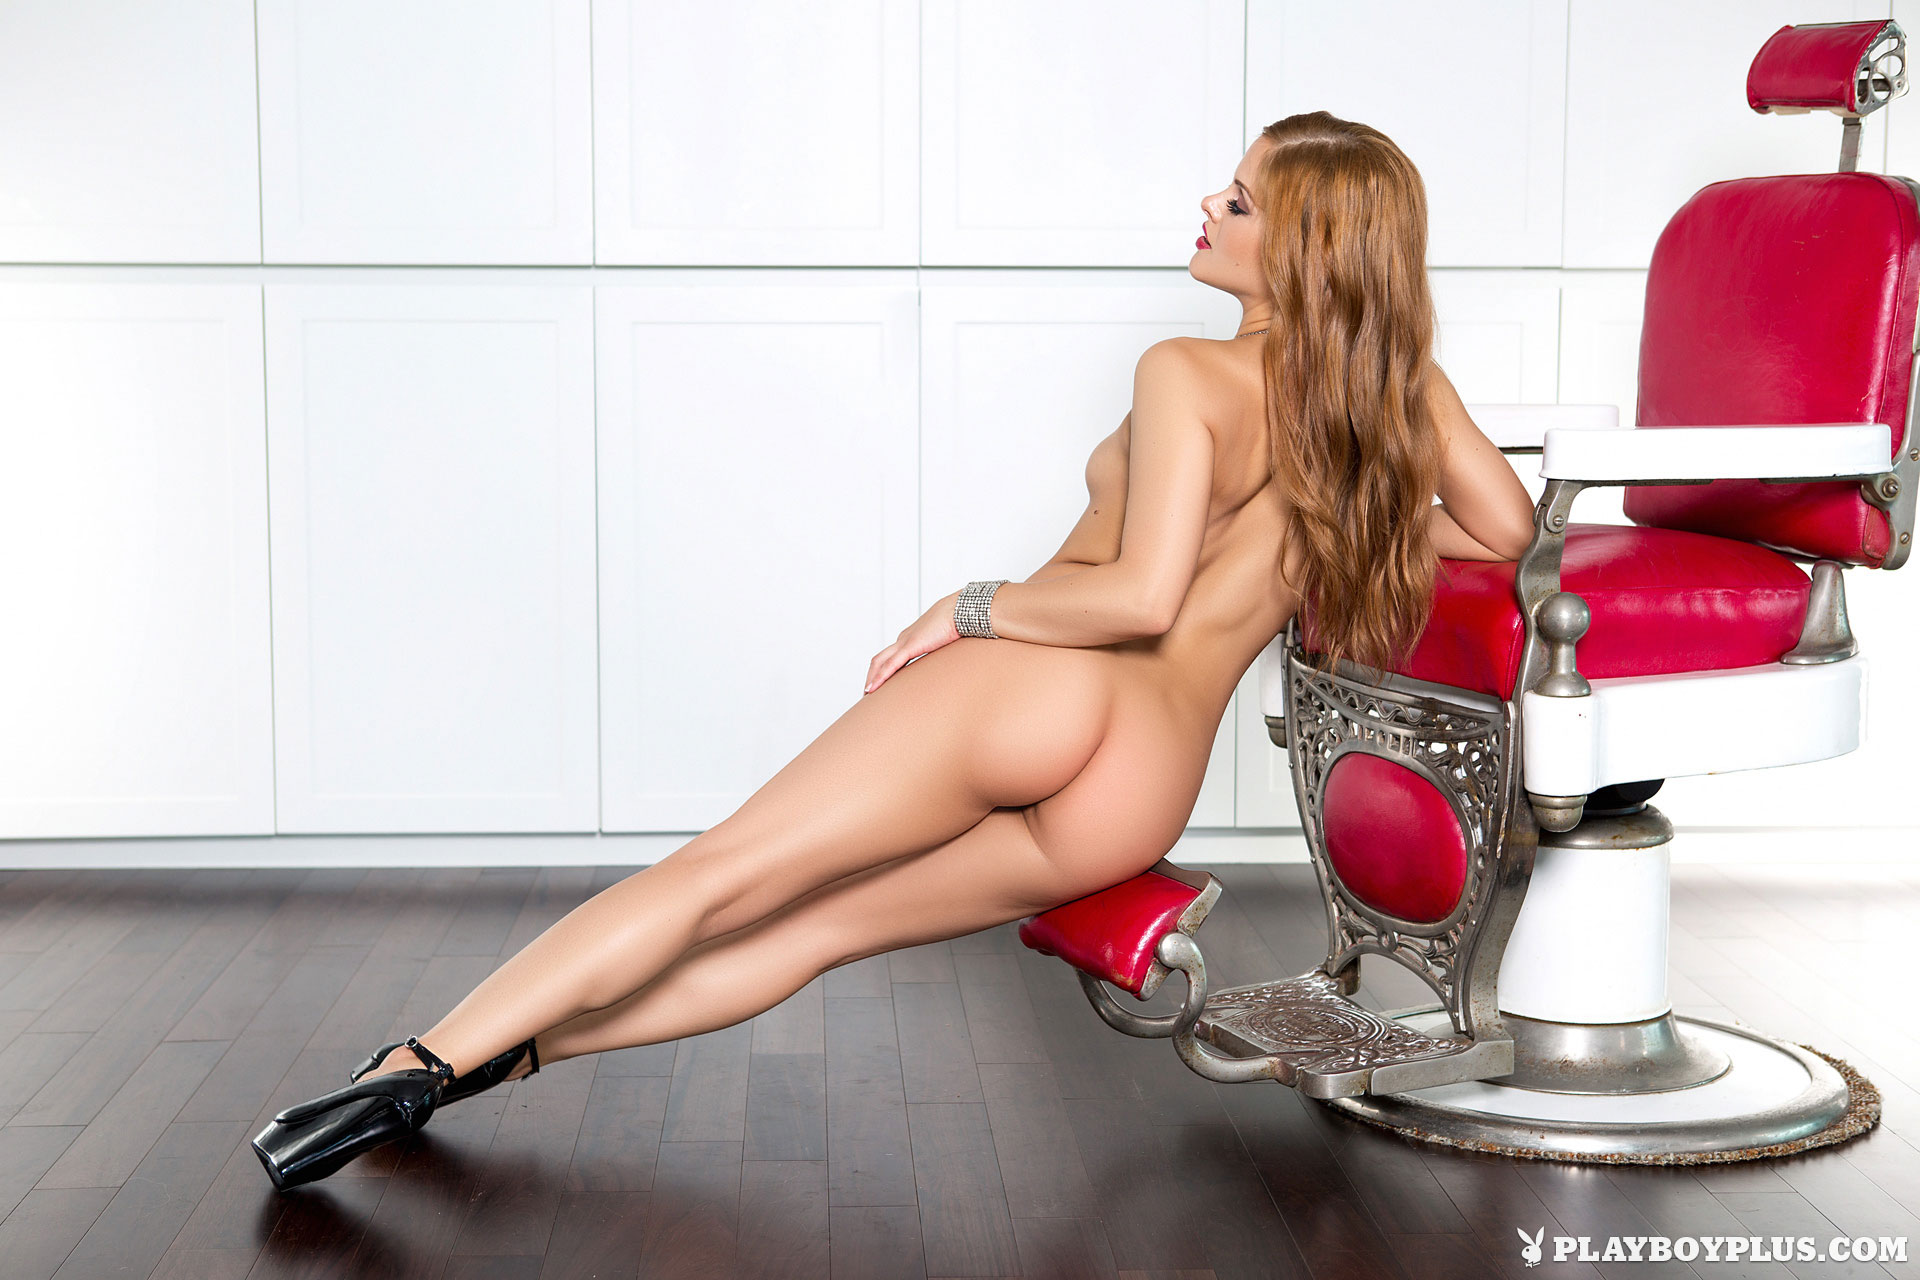 playmate-naked-on-chair-hot-adult-skinny-babes-bj-gif